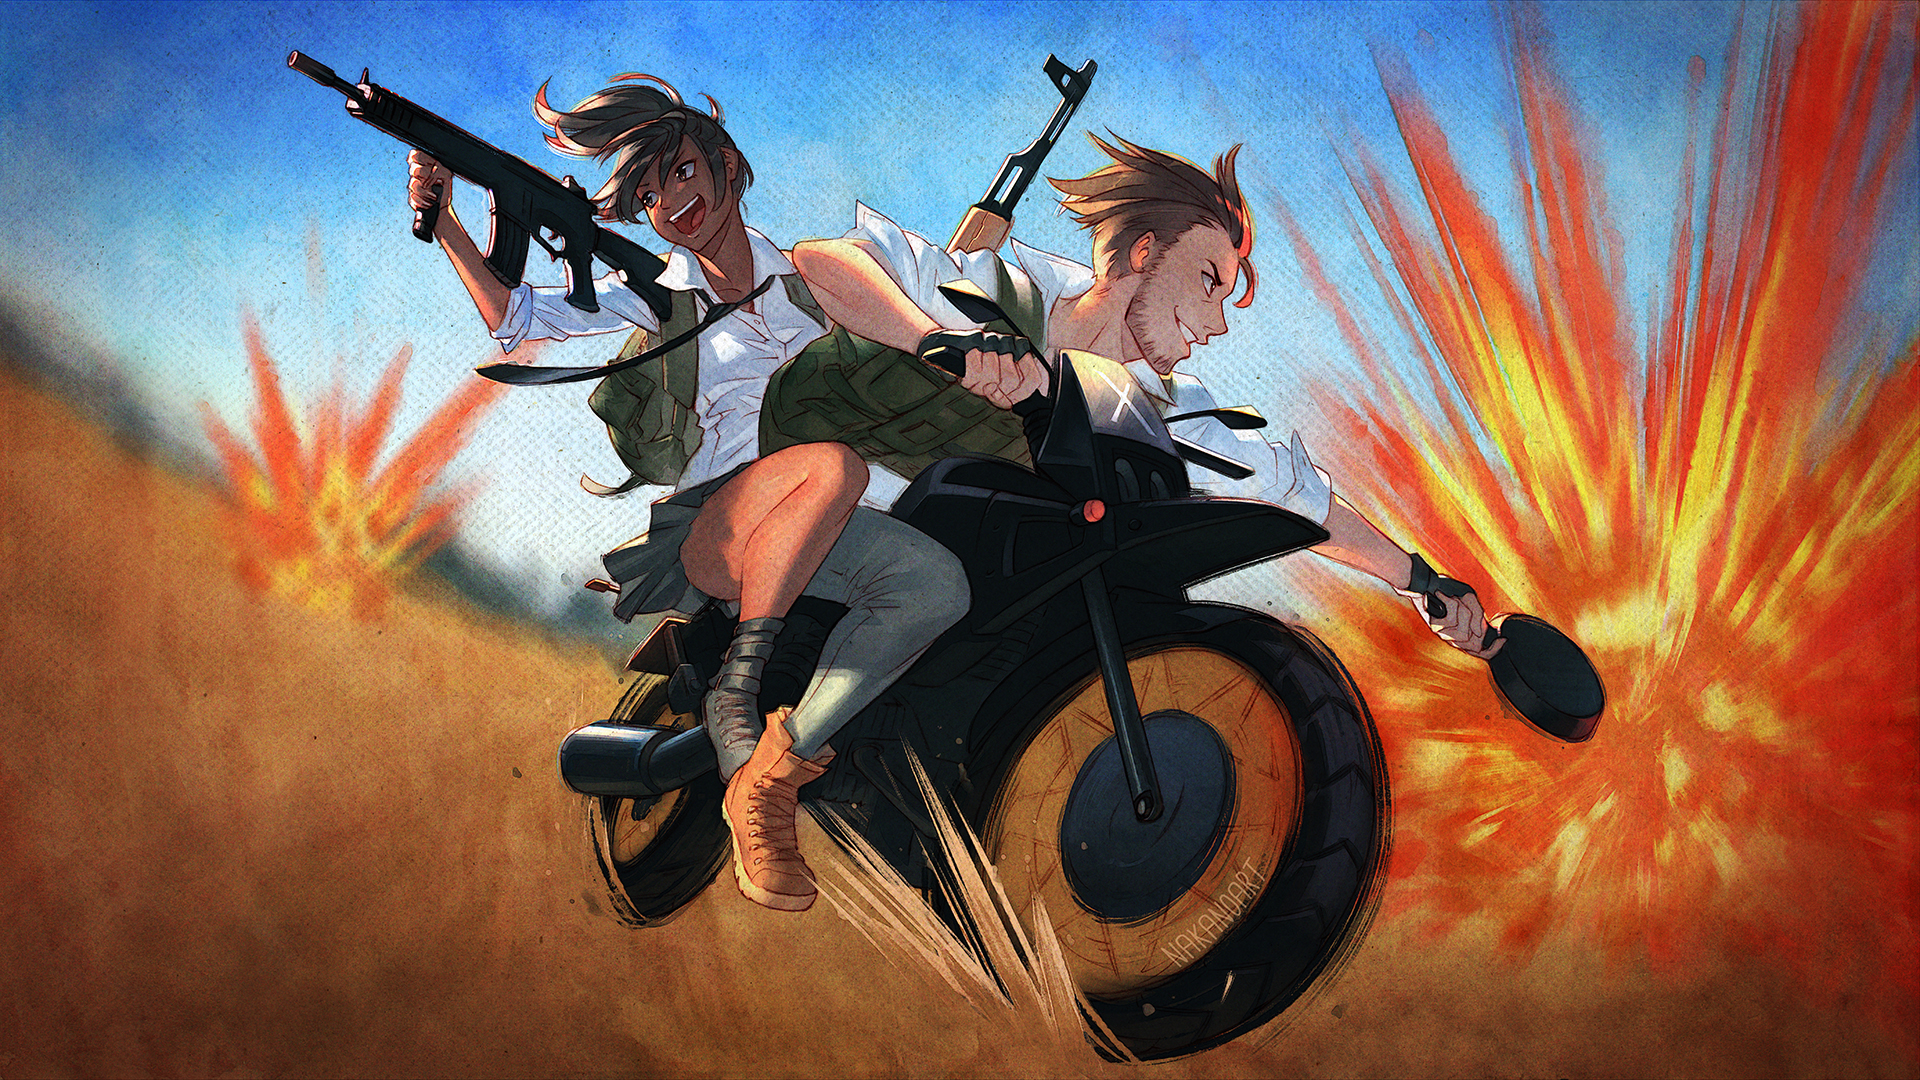 2048x1152 Pubg Bike Rider 4k 2048x1152 Resolution Hd 4k: PlayerUnknowns Battlegrounds Artwork, HD Games, 4k